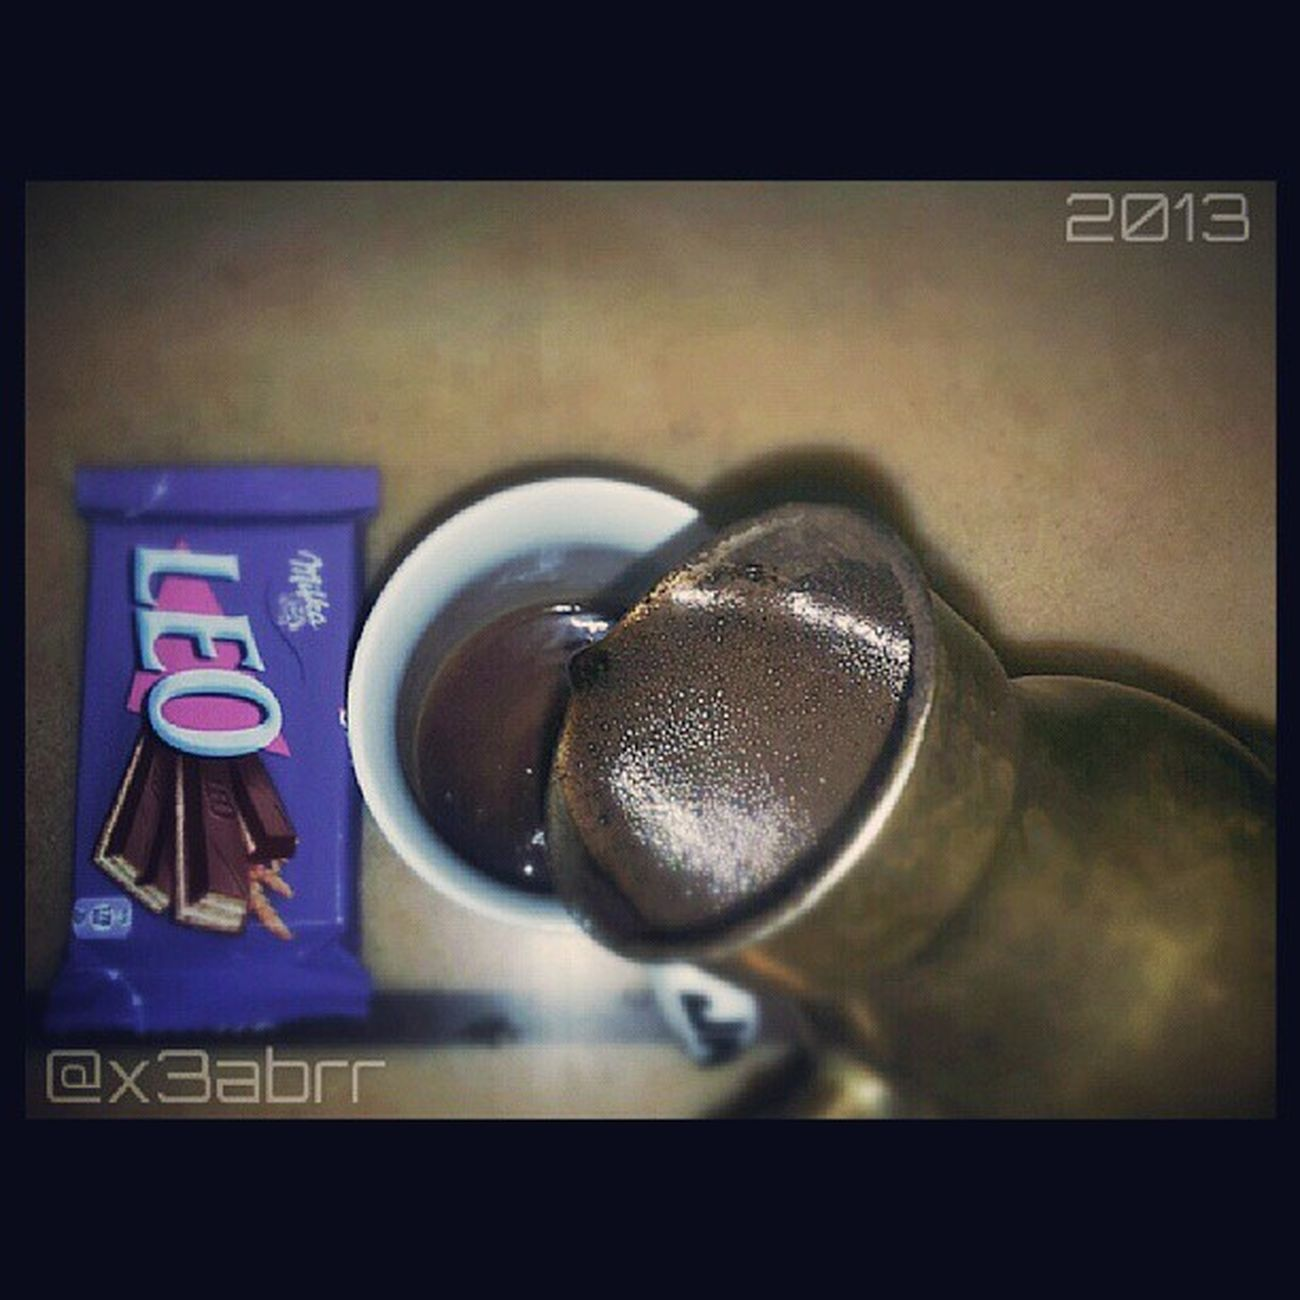 @Instag_app قهوة تركية شوكولاته ليو Turkish coffee chocolate Leo drink drinks slurp pub bar liquor yum yummy thirst thirsty instagood cocktail cocktails drinkup glass can photooftheday beer beers wine camera samsung